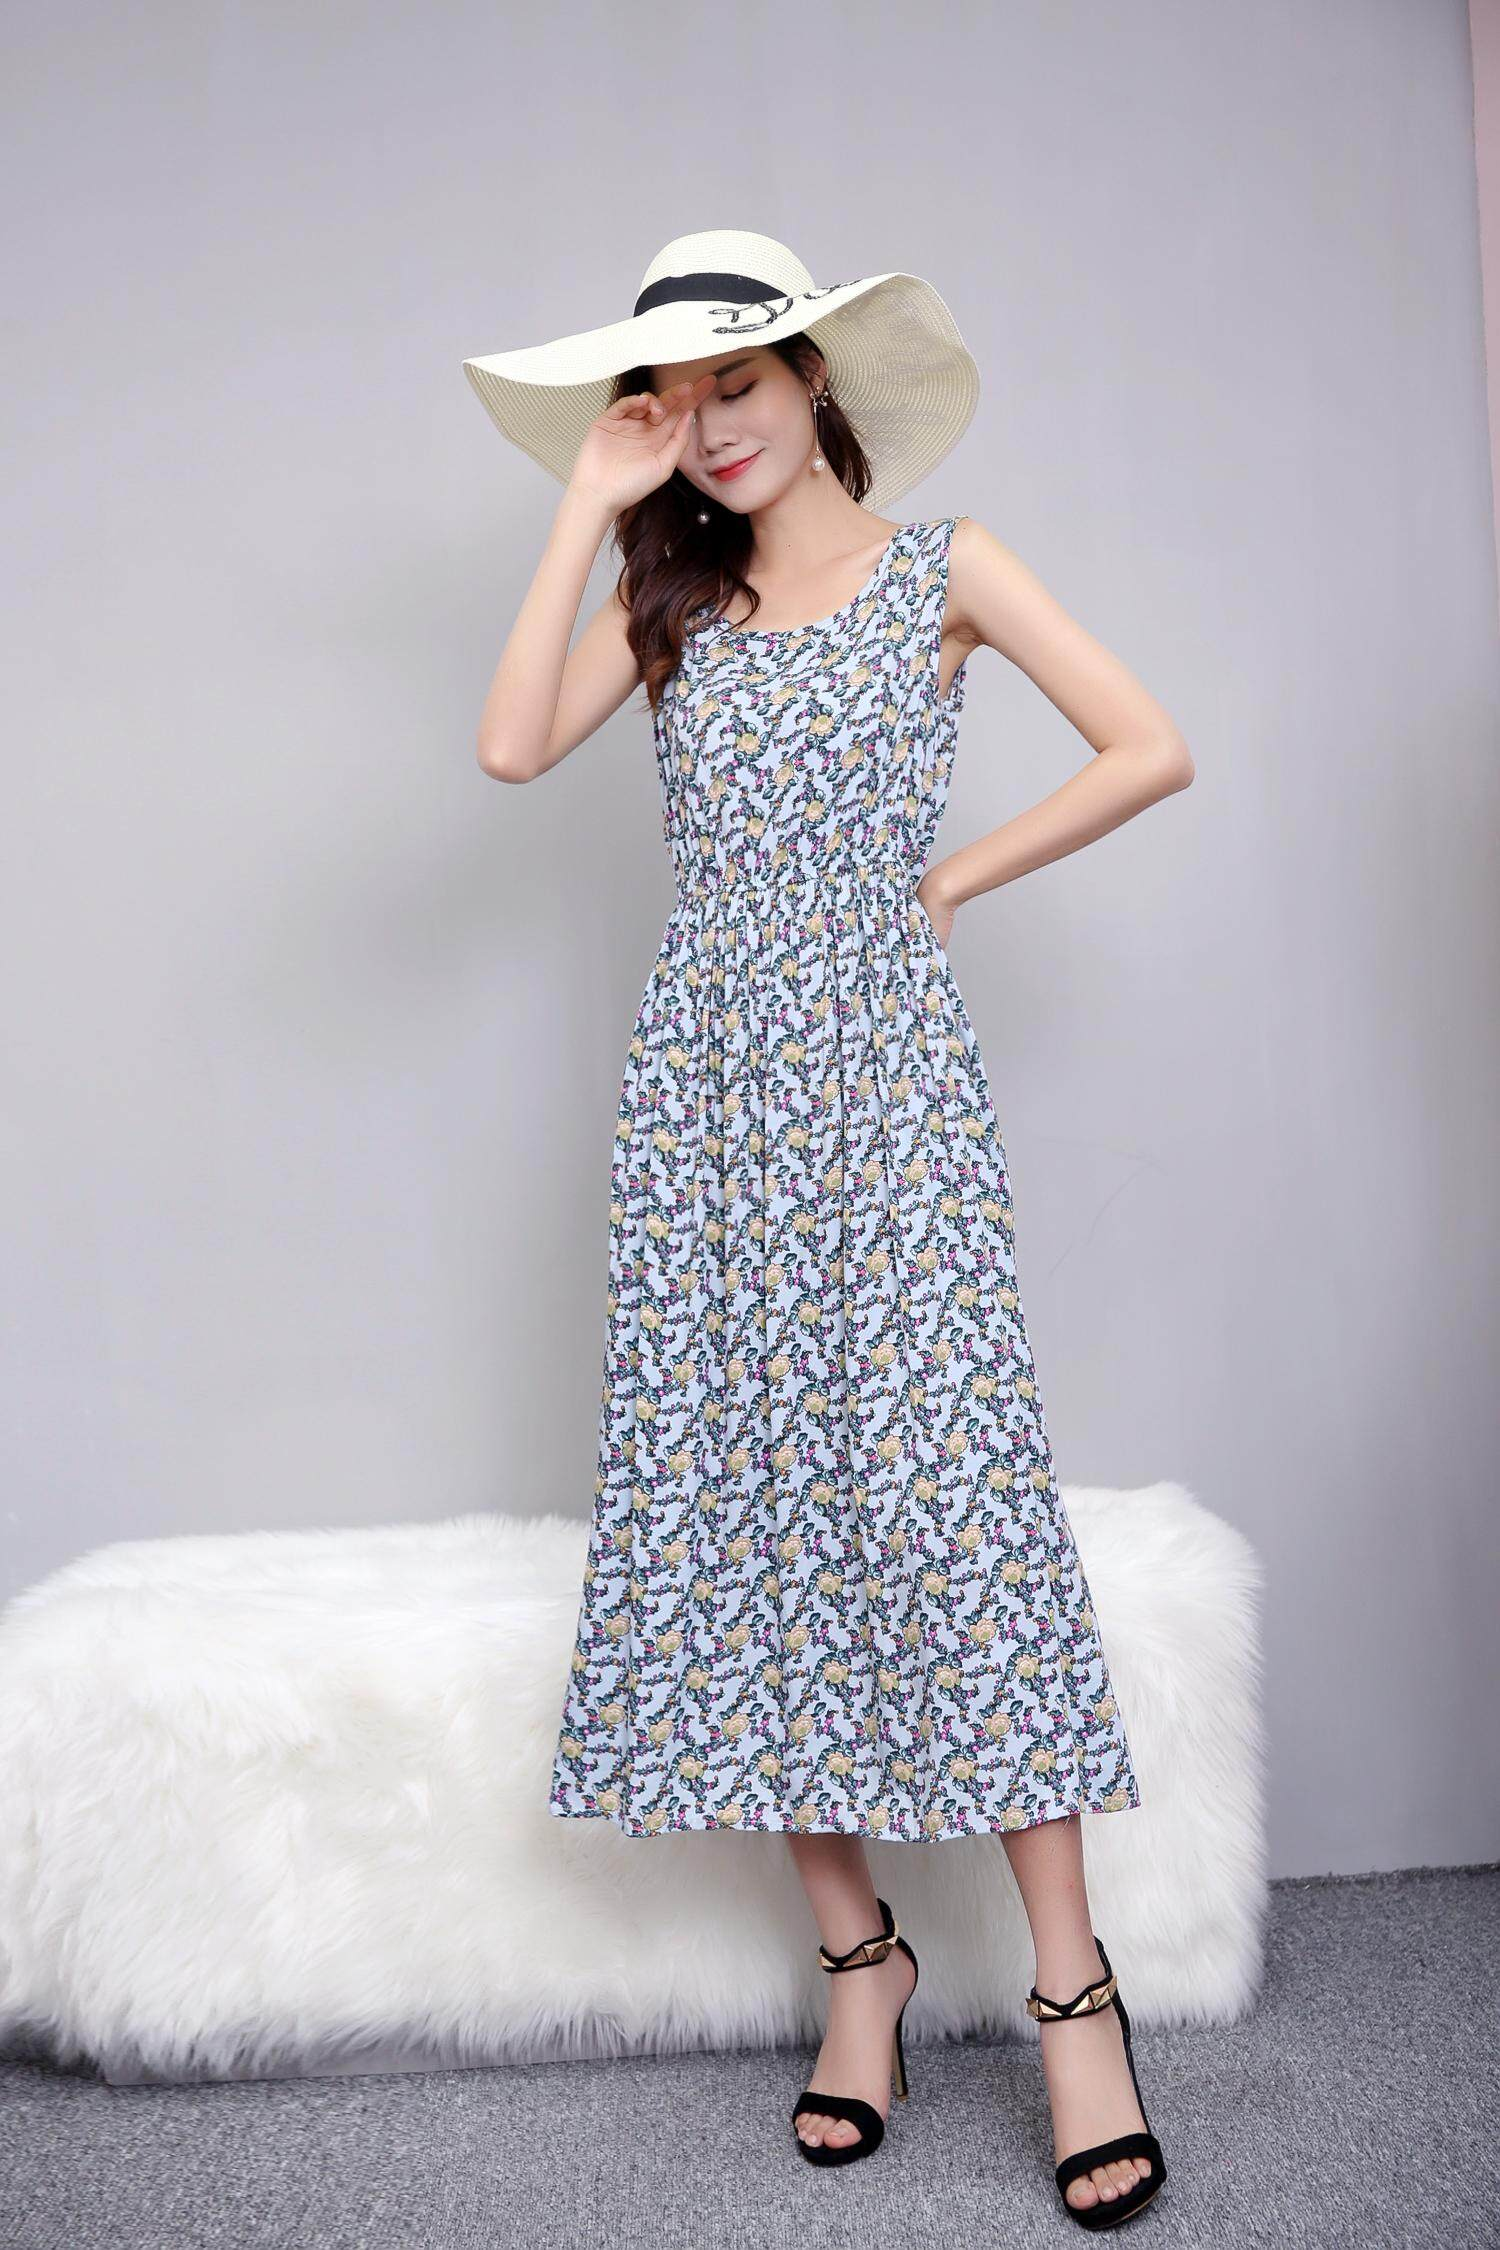 Bolster Store Maxi Flora Sleeveless Long Swing Dress 110cm Long Women Ladies Summer Wear Baju Wanita Panjang